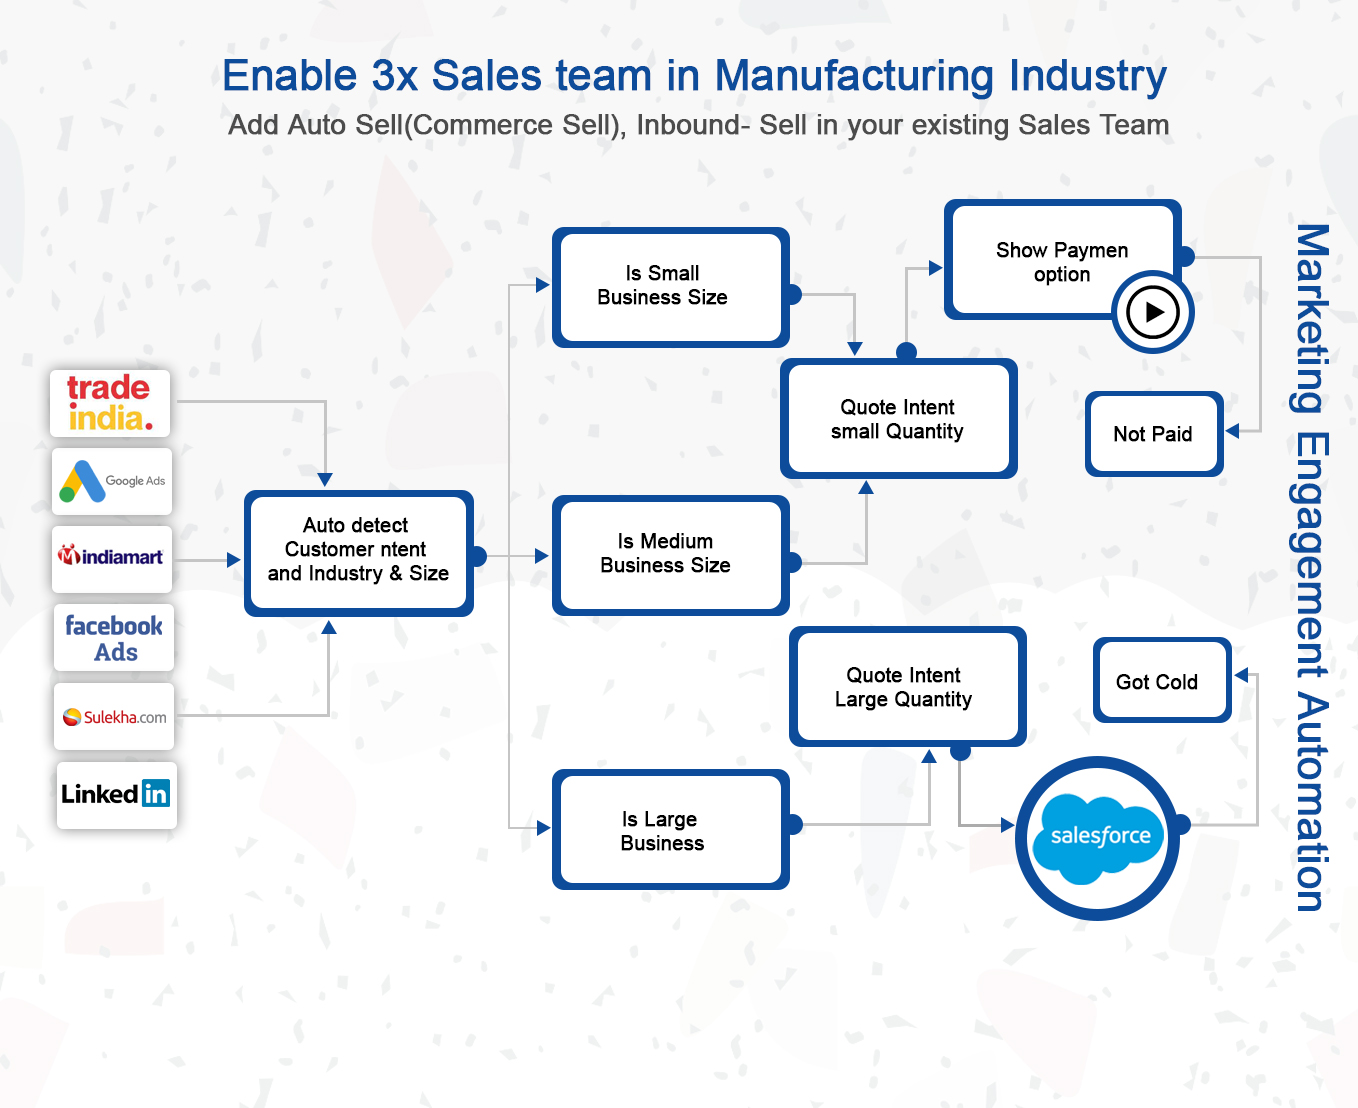 Enable 3x Sales team in Manufacturing Industry